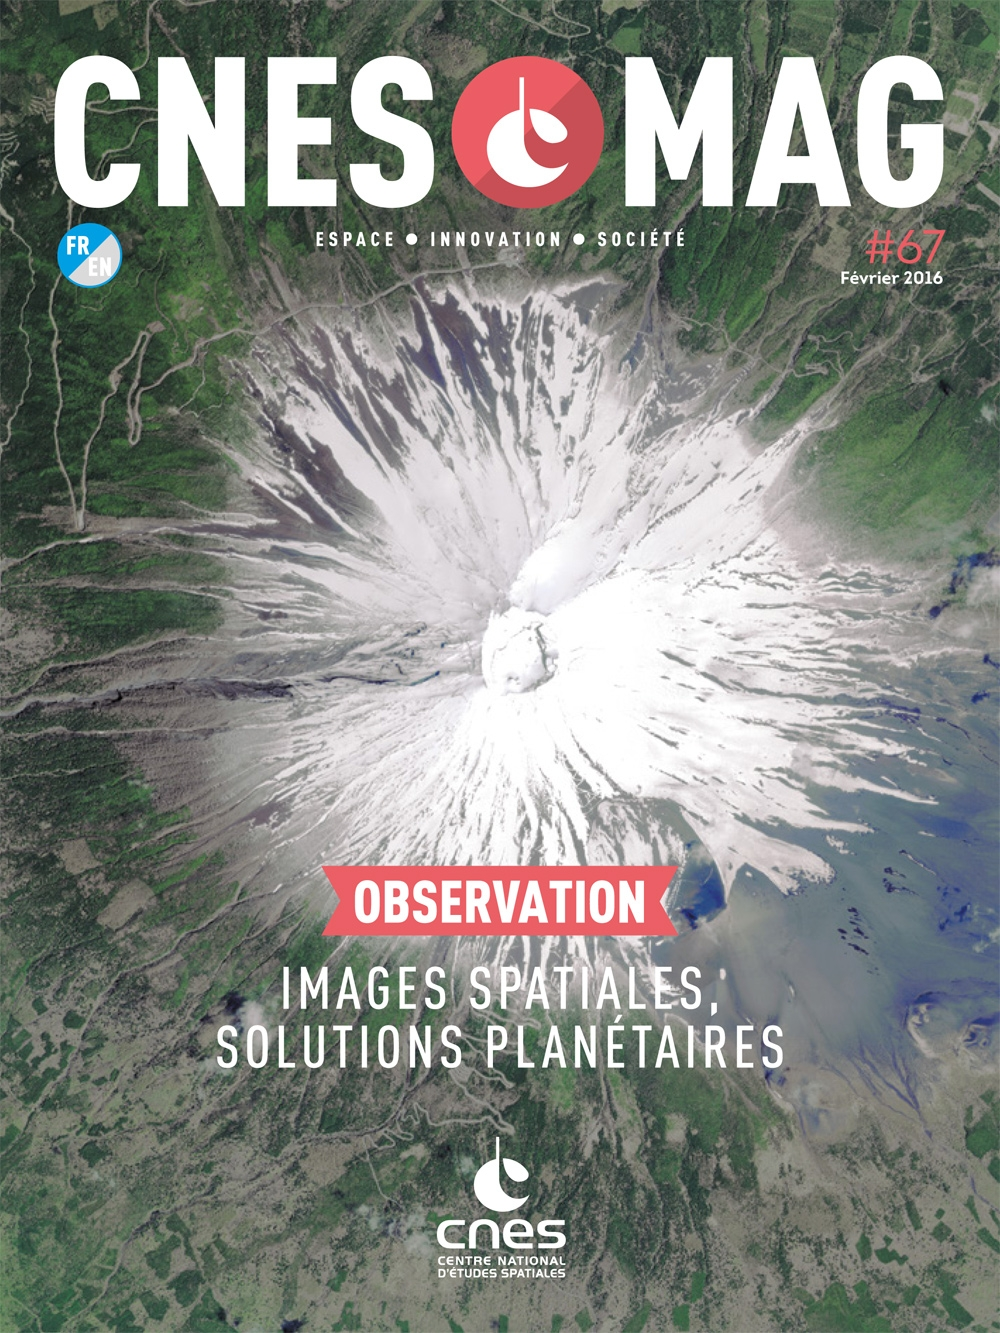 is_cnesmag67-imagerie-couv_fr.jpg